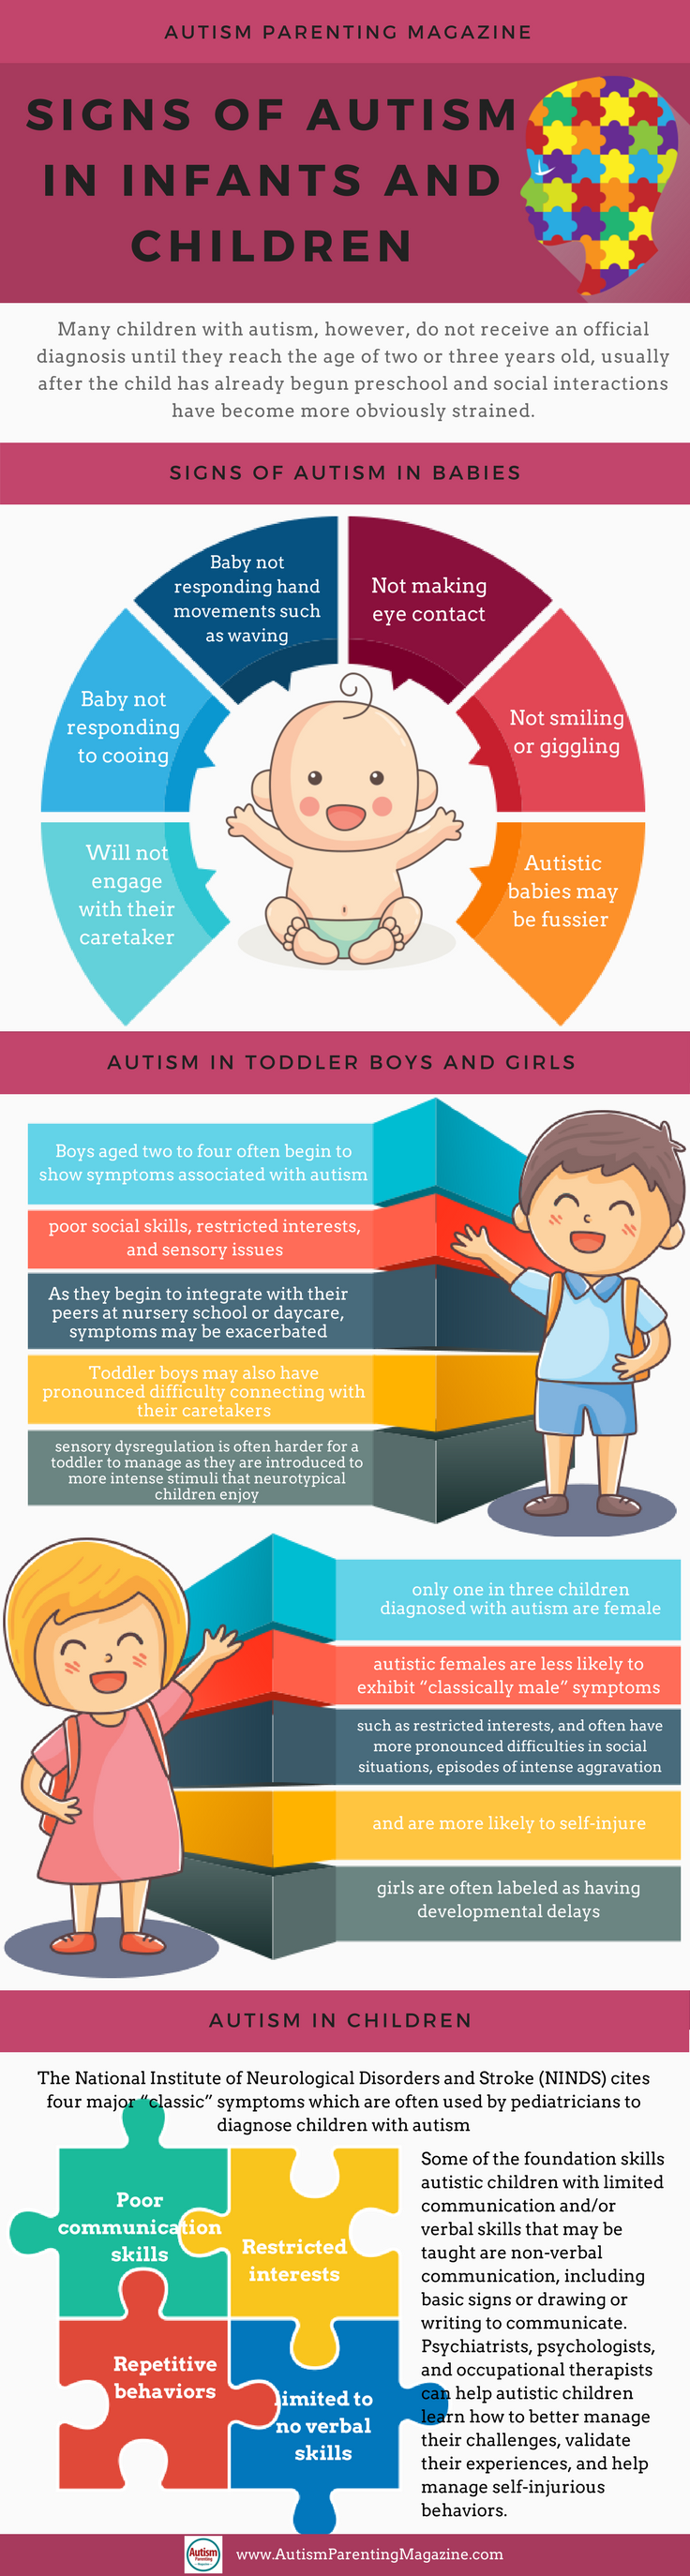 Signs of Autism in Infants and Children